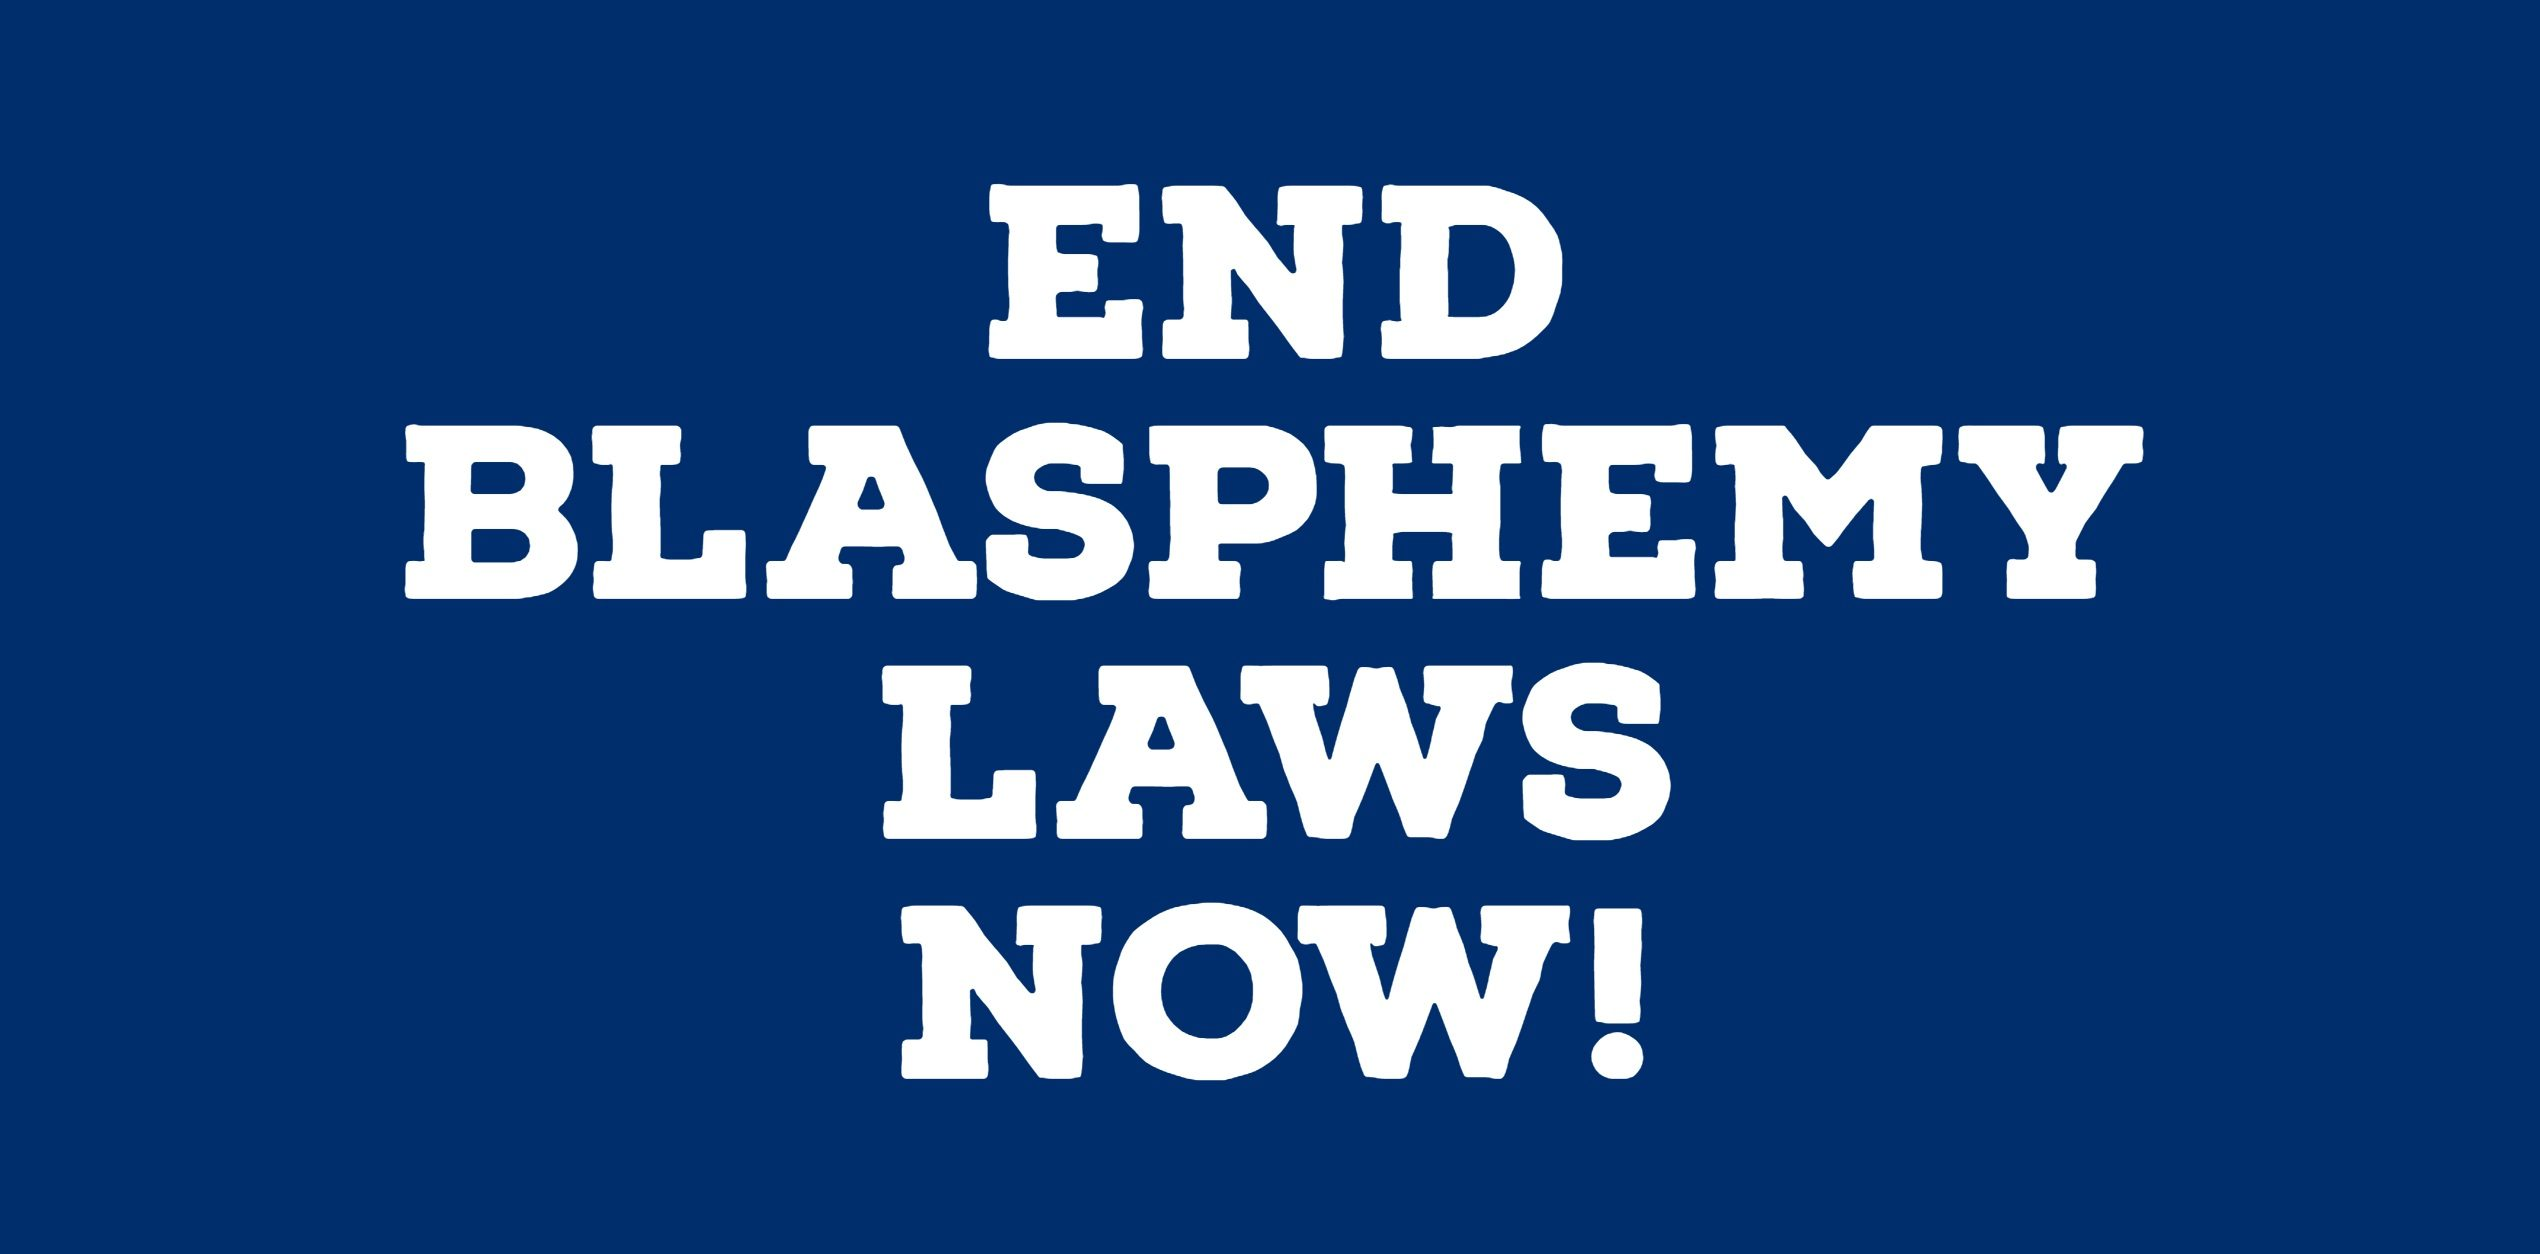 End Blasphemy Laws Campaign